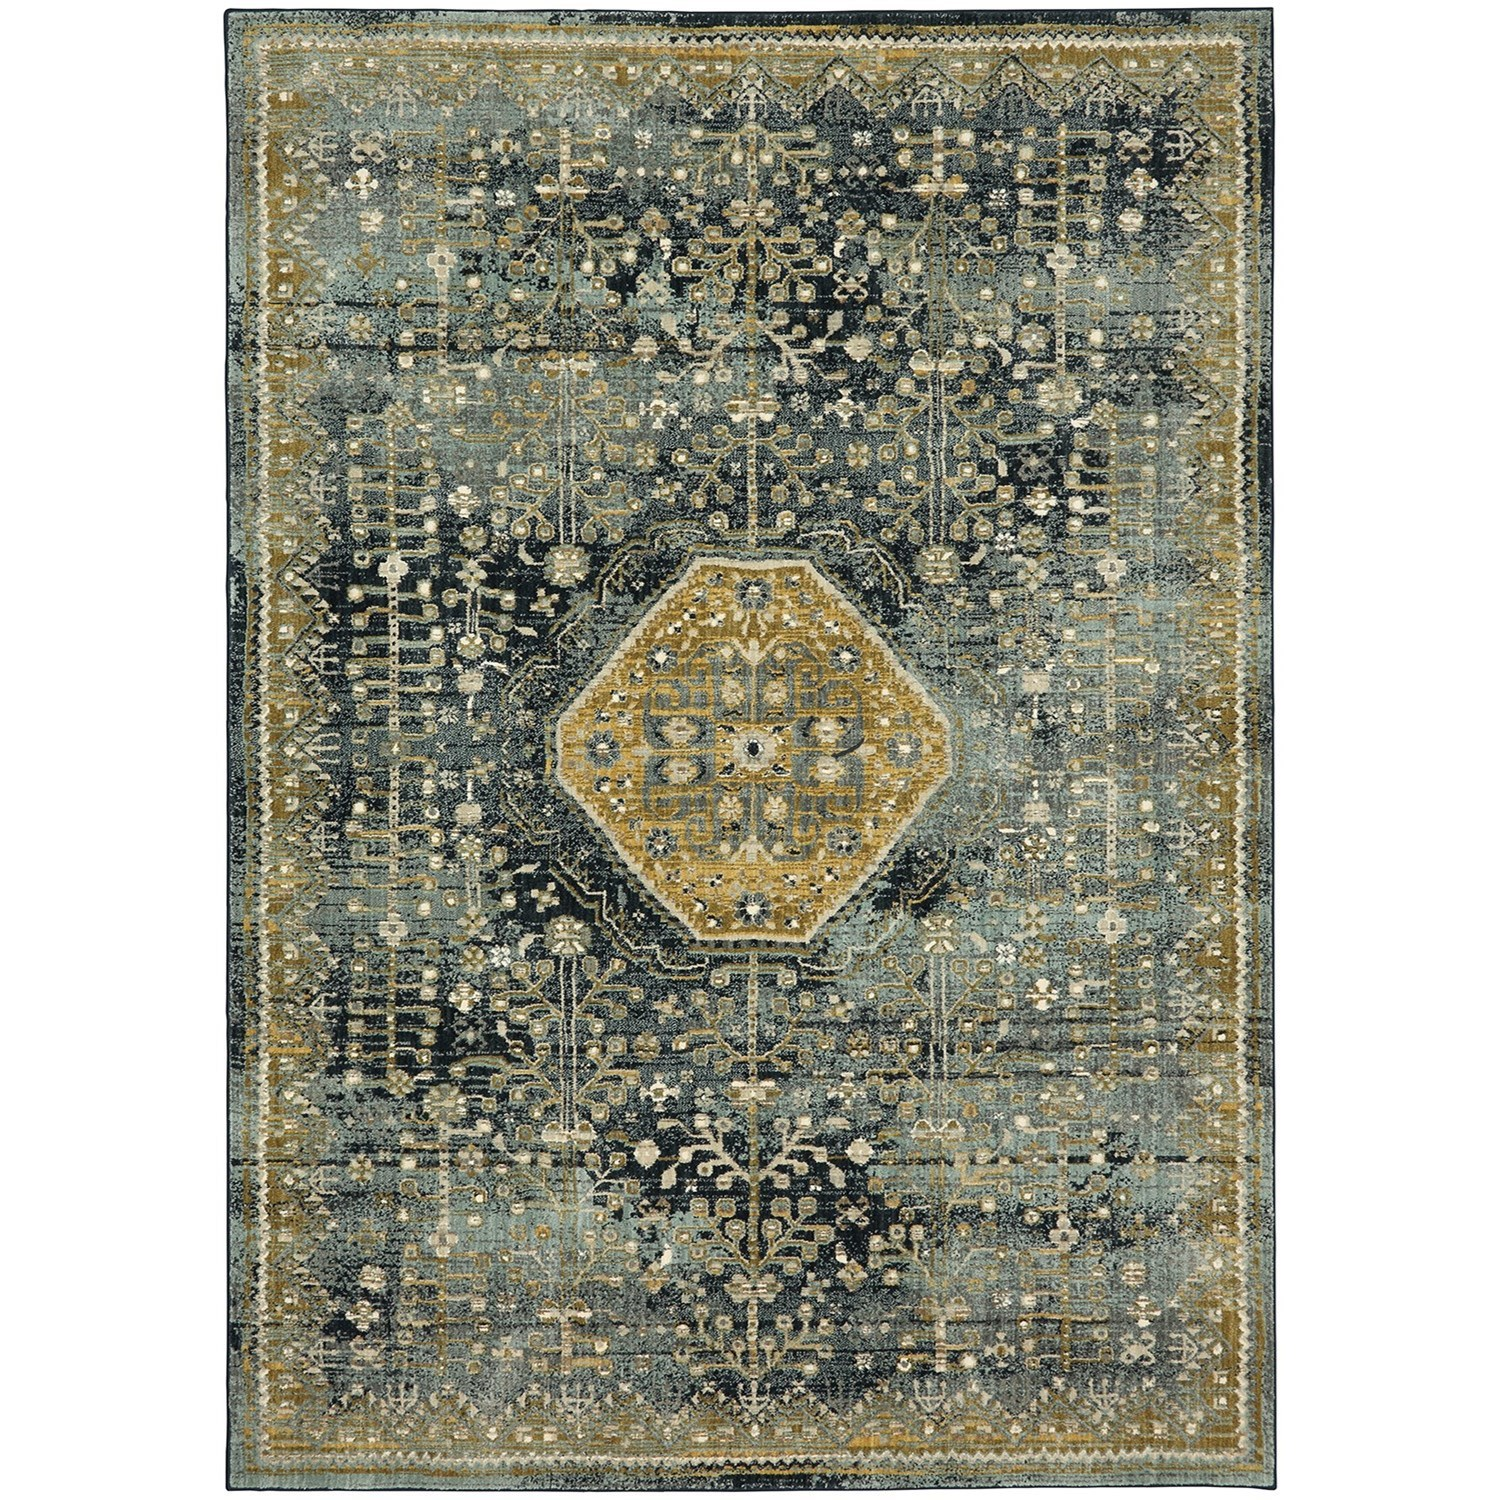 """Touchstone 3' 6""""x5' 6"""" Rectangle Ornamental Area Rug by Karastan Rugs at Adcock Furniture"""